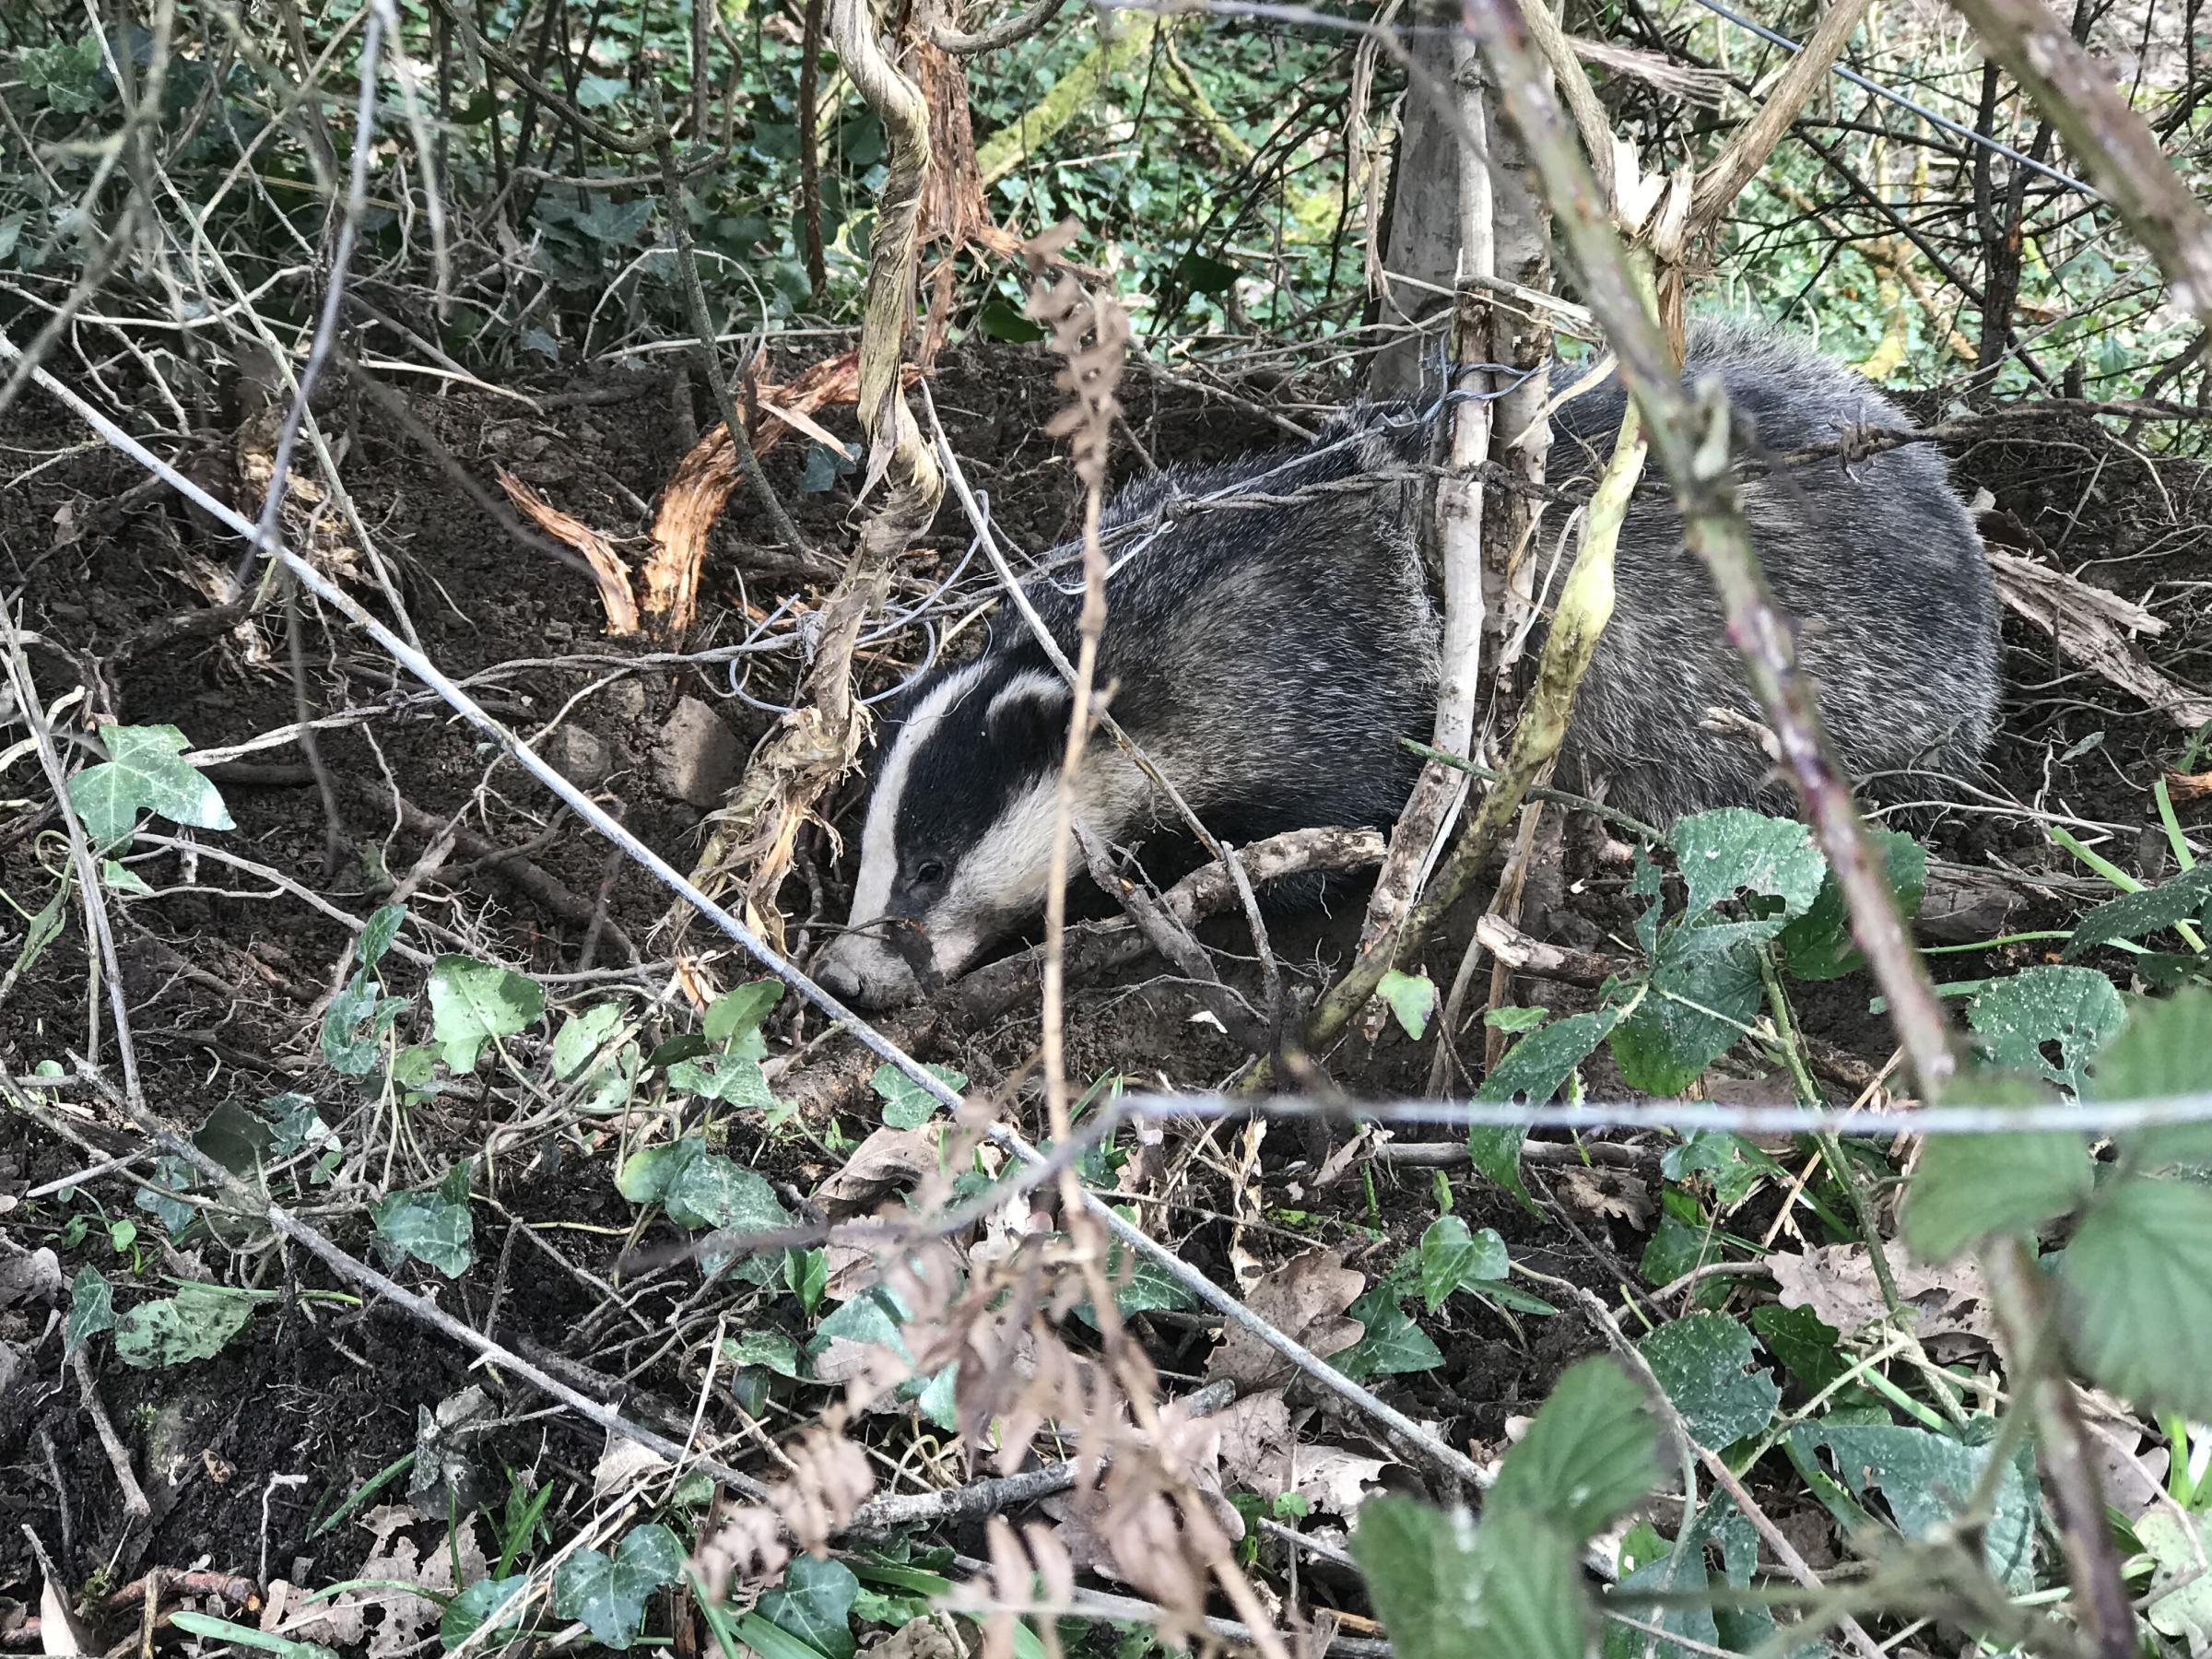 The badger was spotted struggling amid shrubs and hedgerow - before an RSPCA officer found that the wild animal had become trapped by a snare. Picture: RSPCA